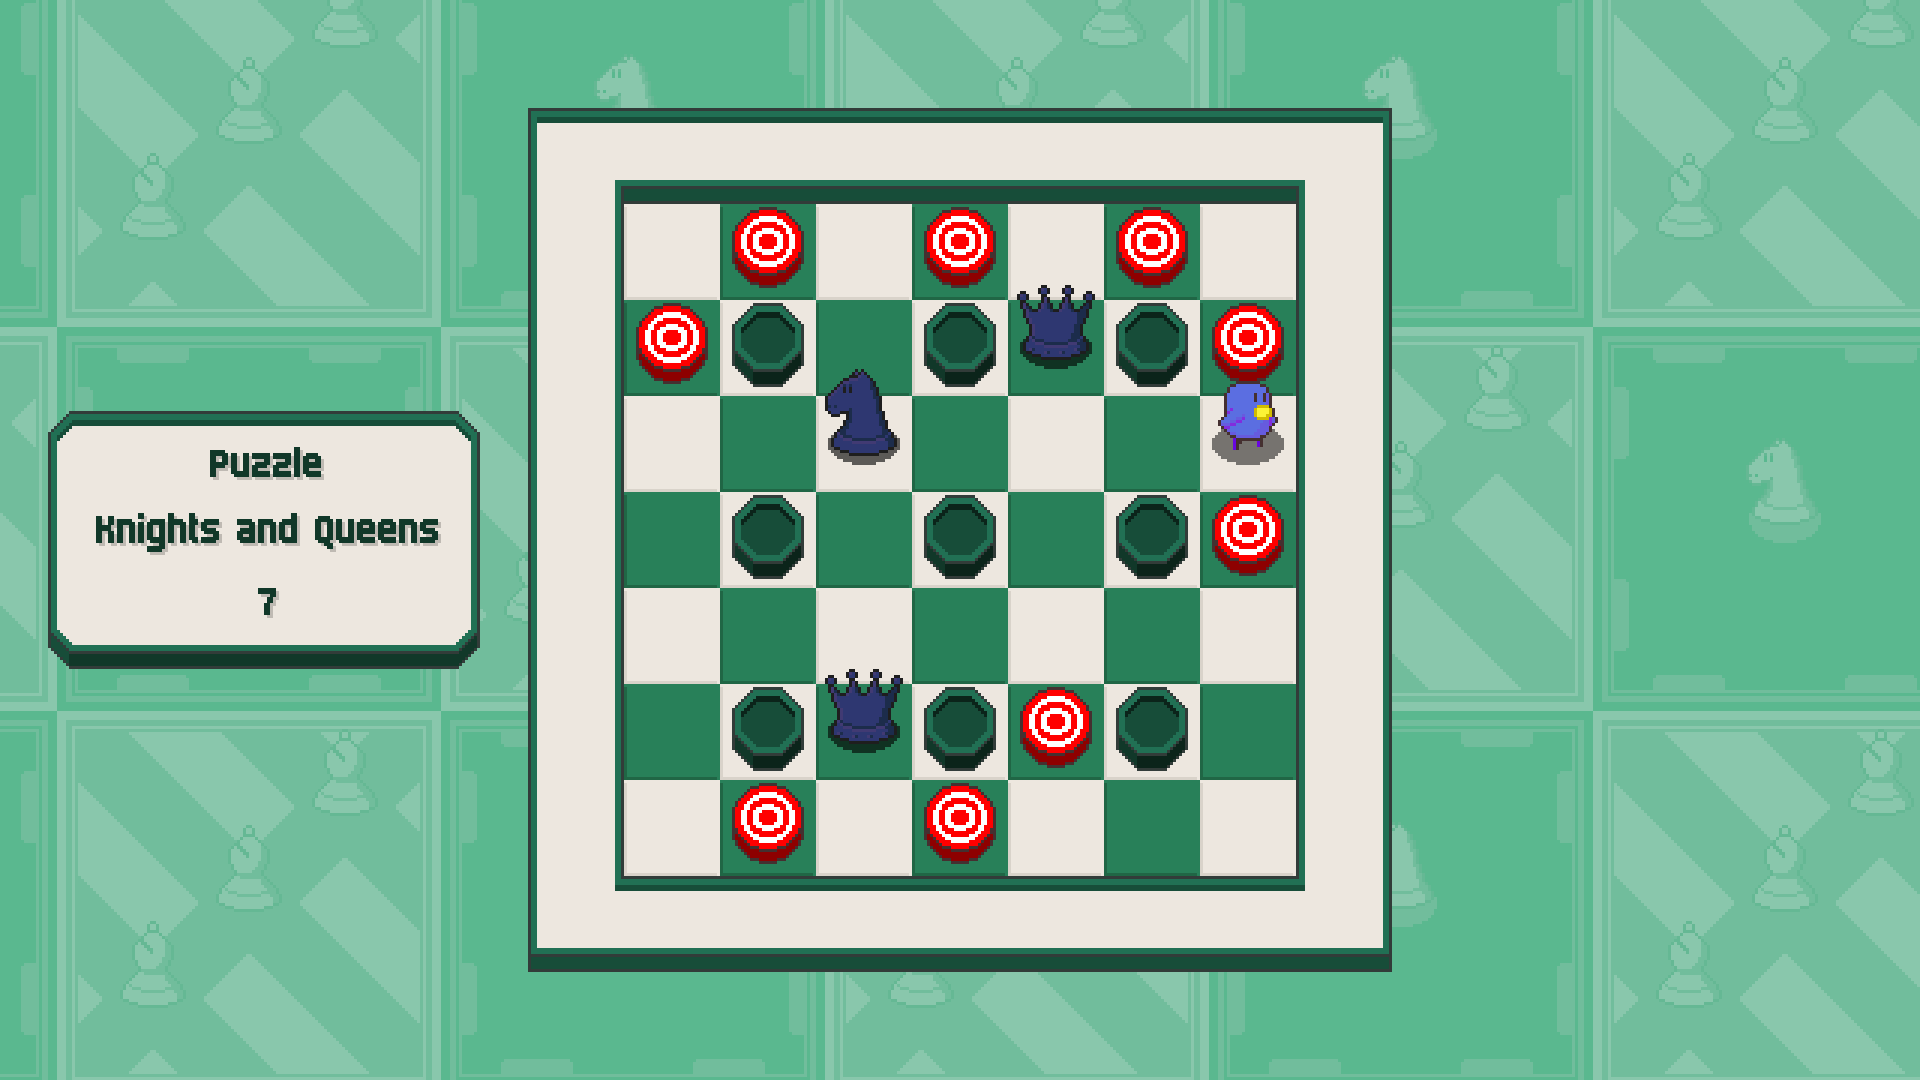 Chessplosion - Puzzle Solution Guide + Achievements Walkthrough - Grandblaster: Knights and Queens - 21D1F09